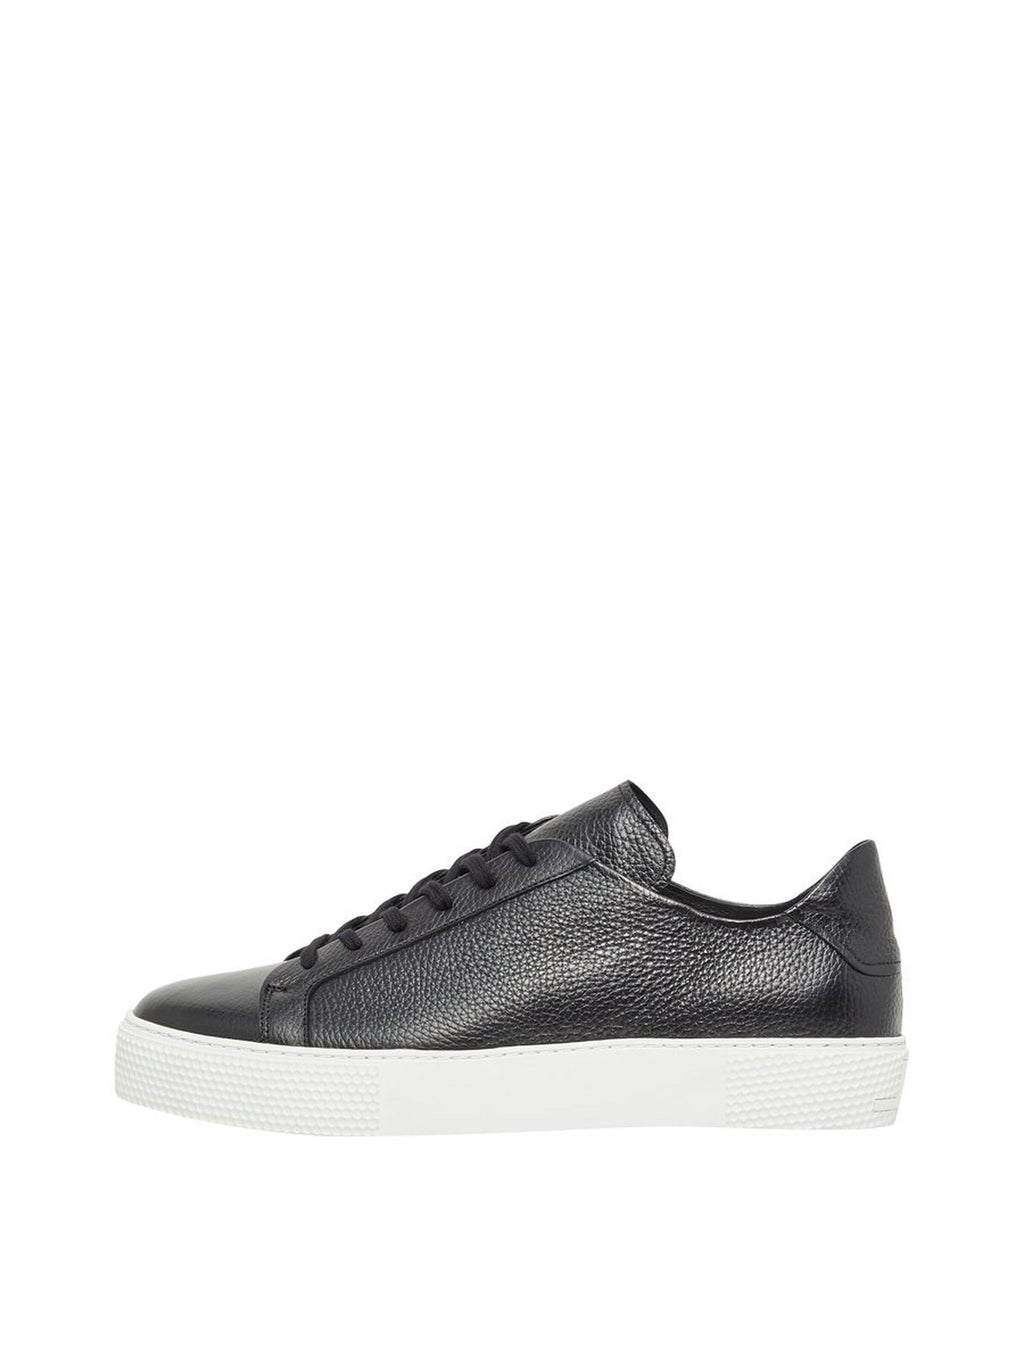 Black Signature Low Top Leather Sneaker